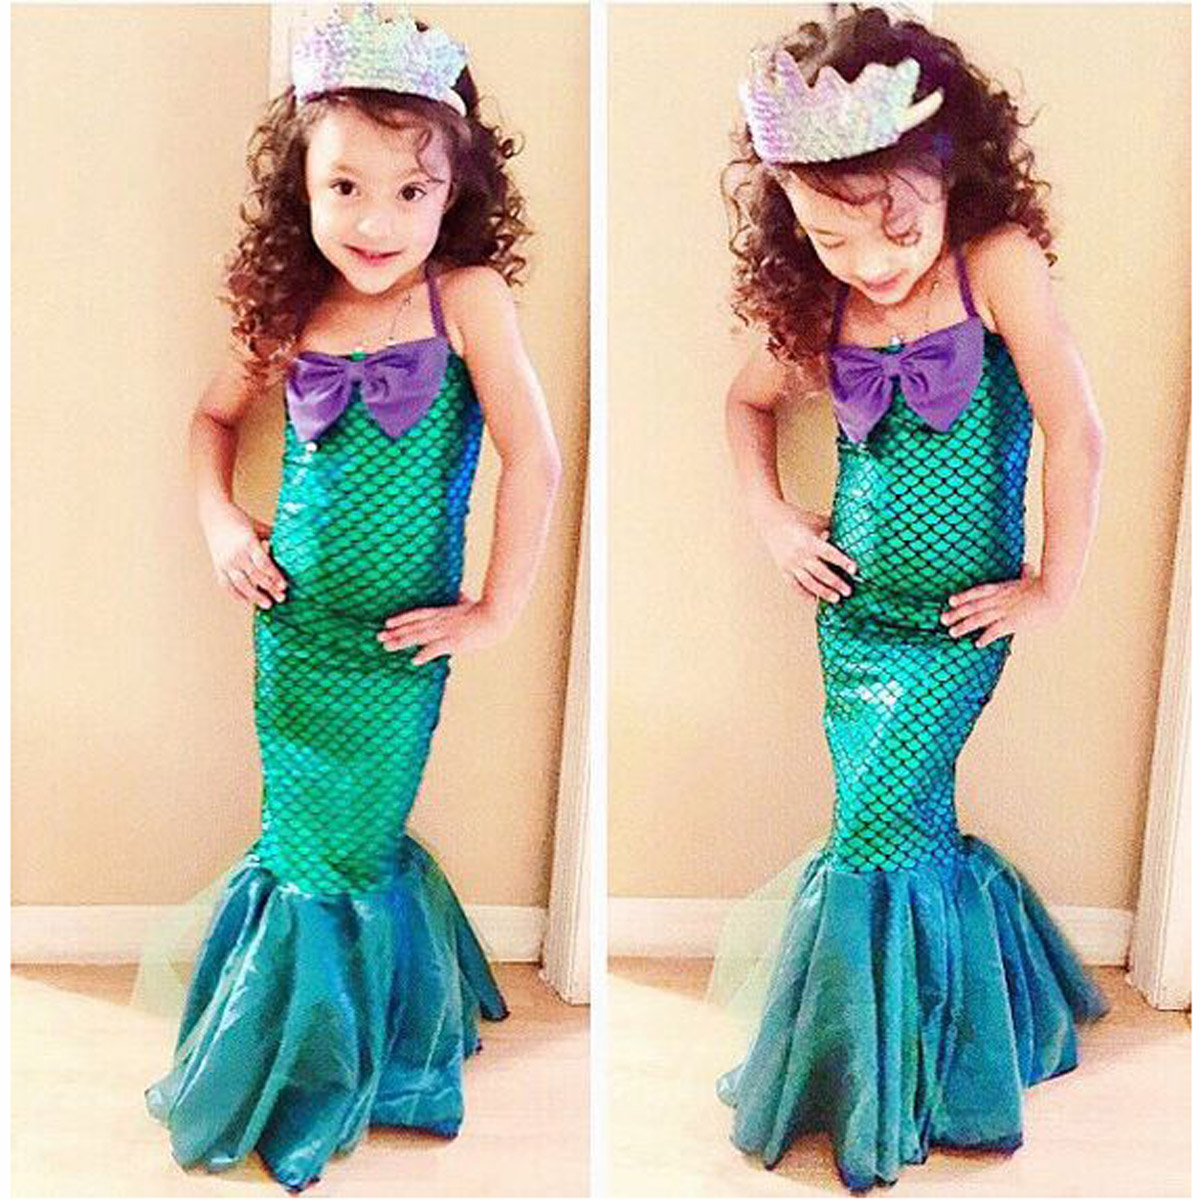 Kids Ariel Sequin Little Mermaid Set Girls Princess Fancy Dress Up Party Costume 3-4 Years